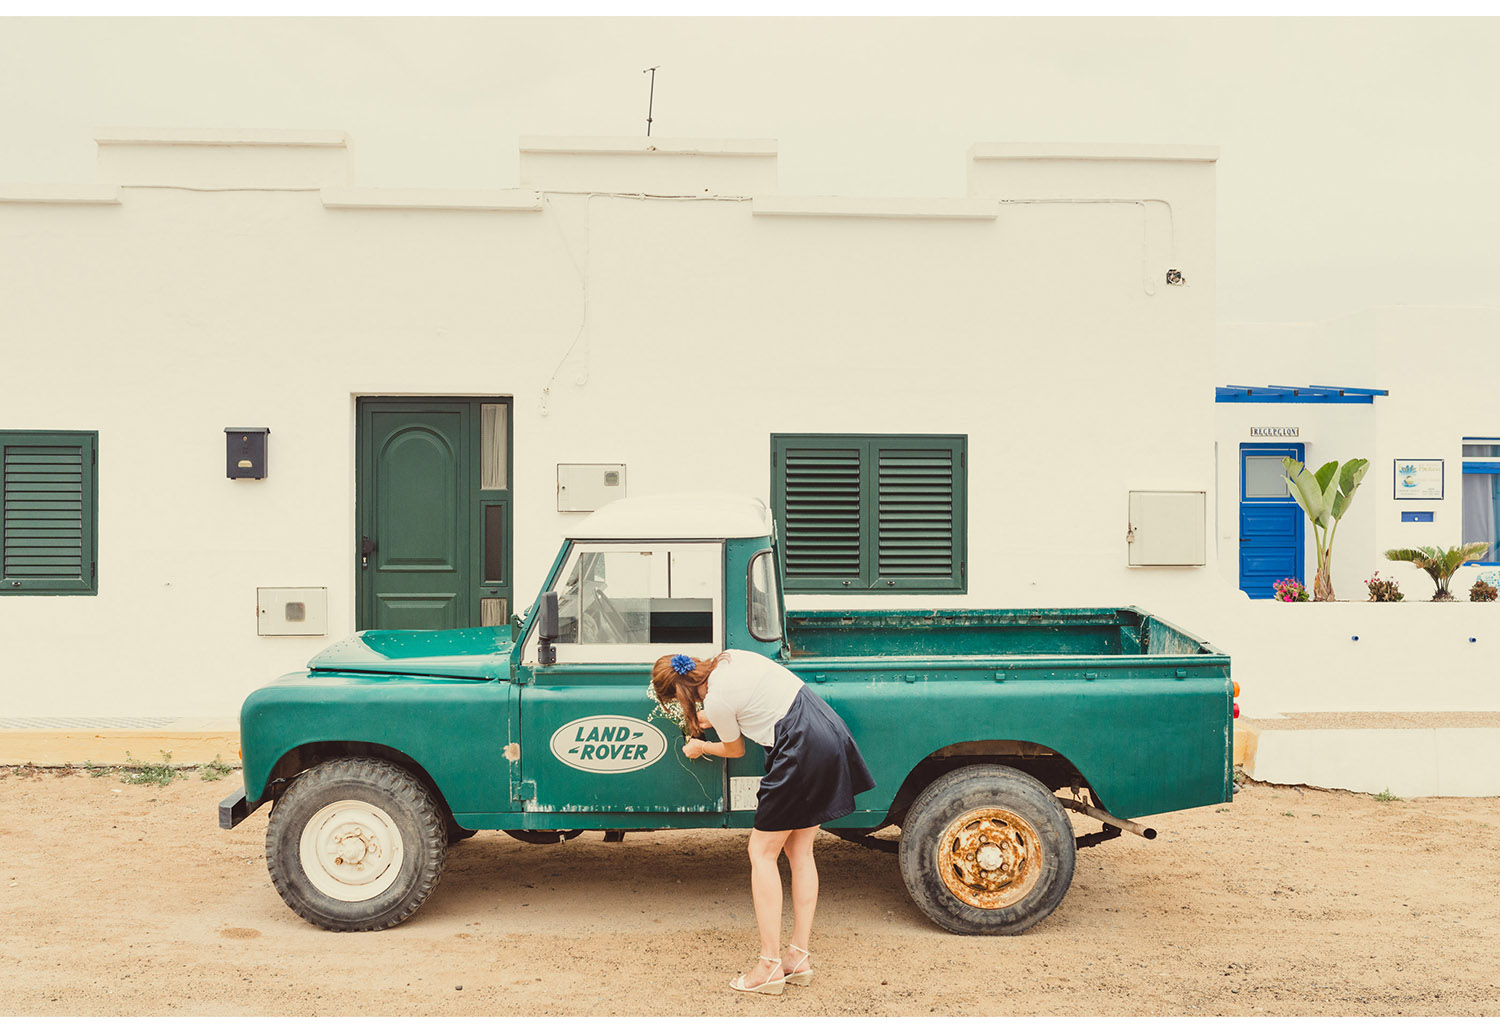 Land Rover La Graciosa